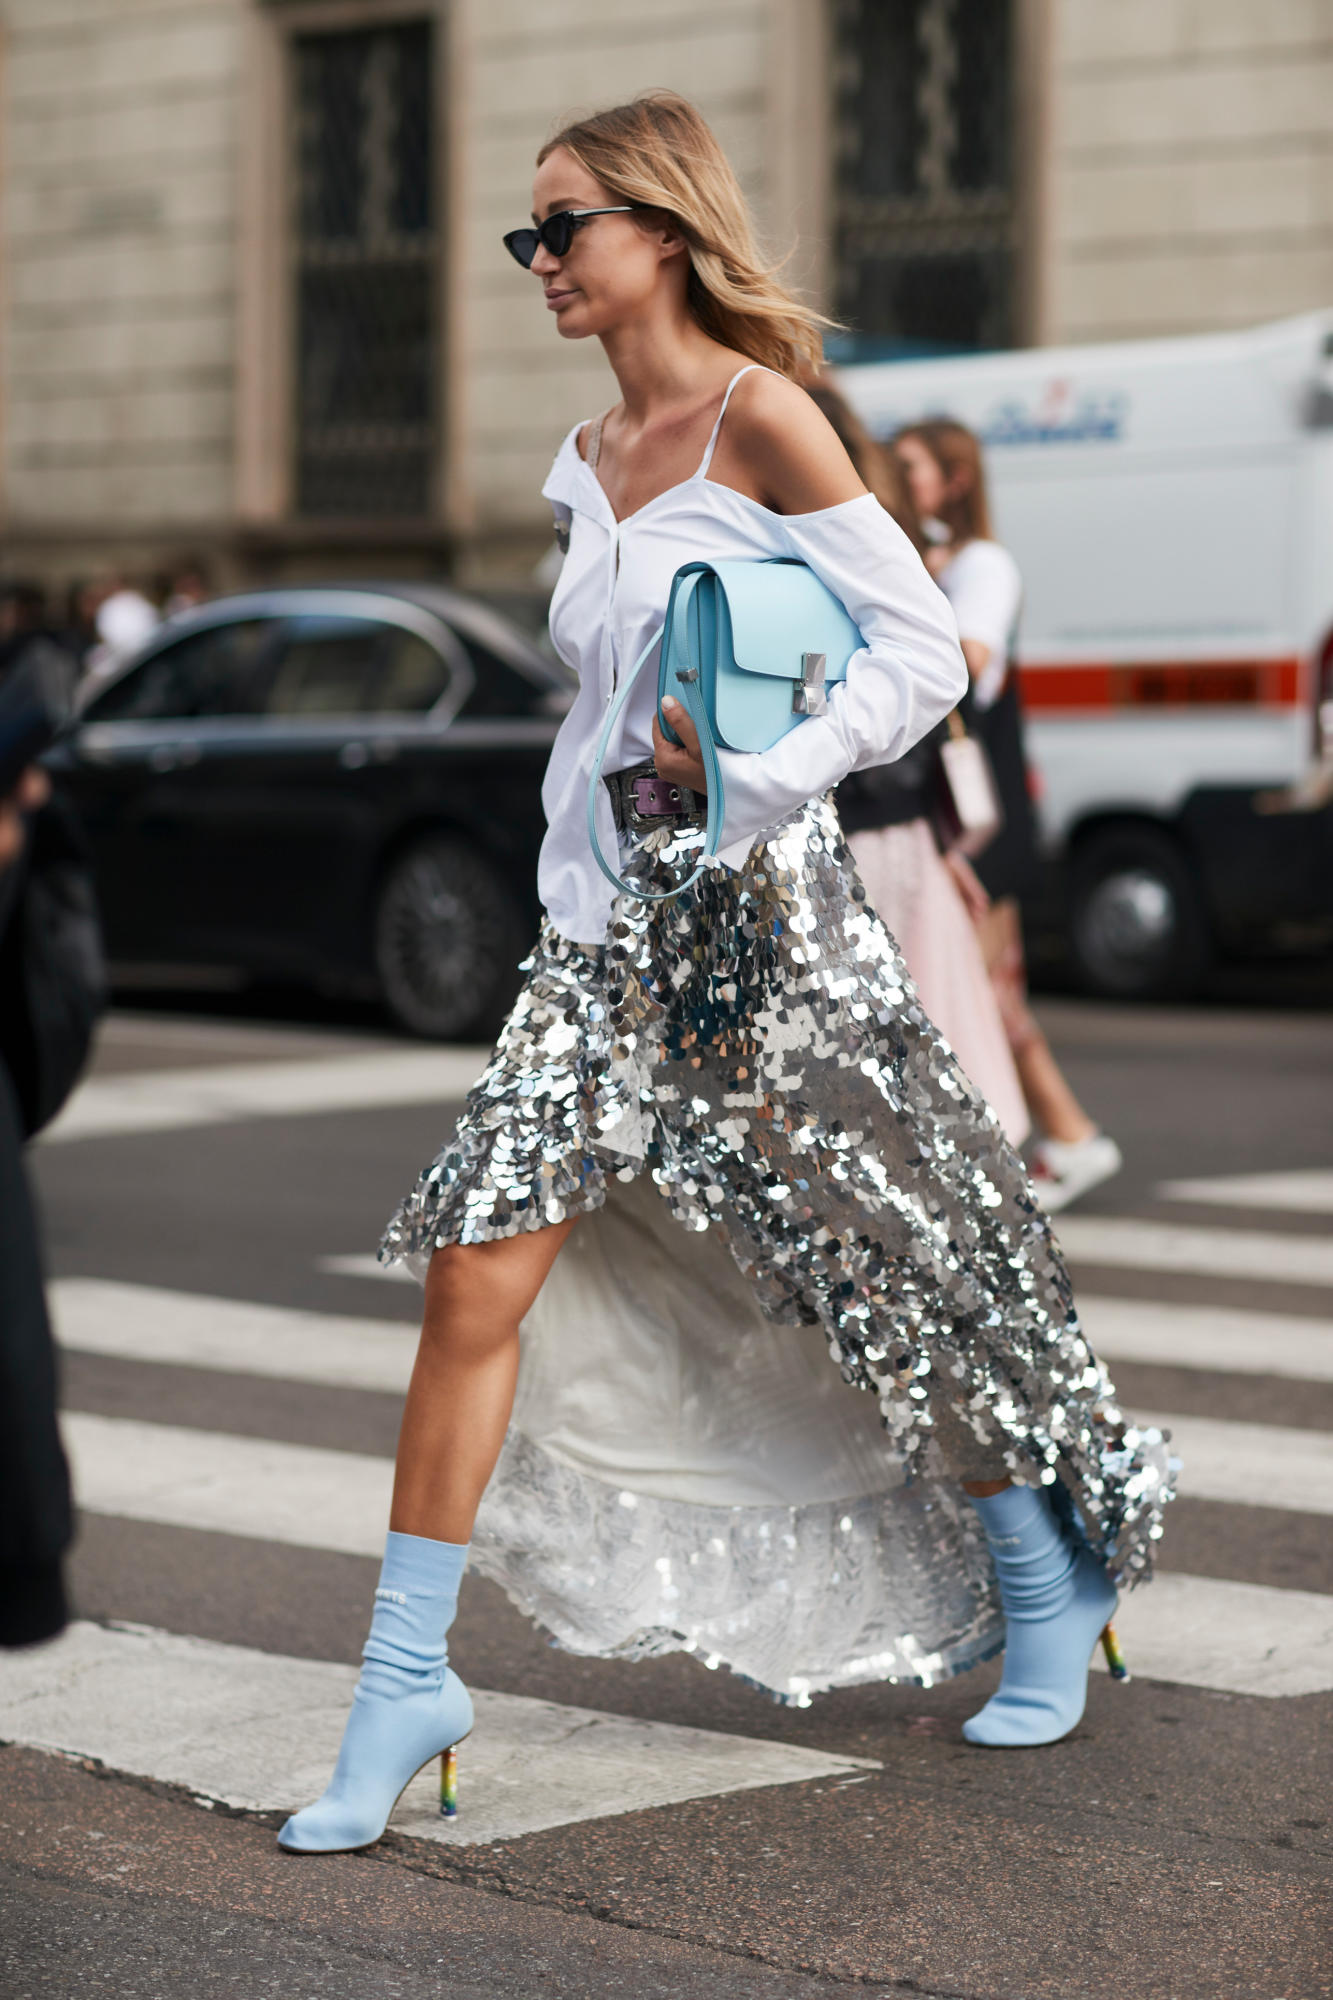 Fashion Must Haves: Yes, The Milan Fashion Week Street Style Spring 2018 Was